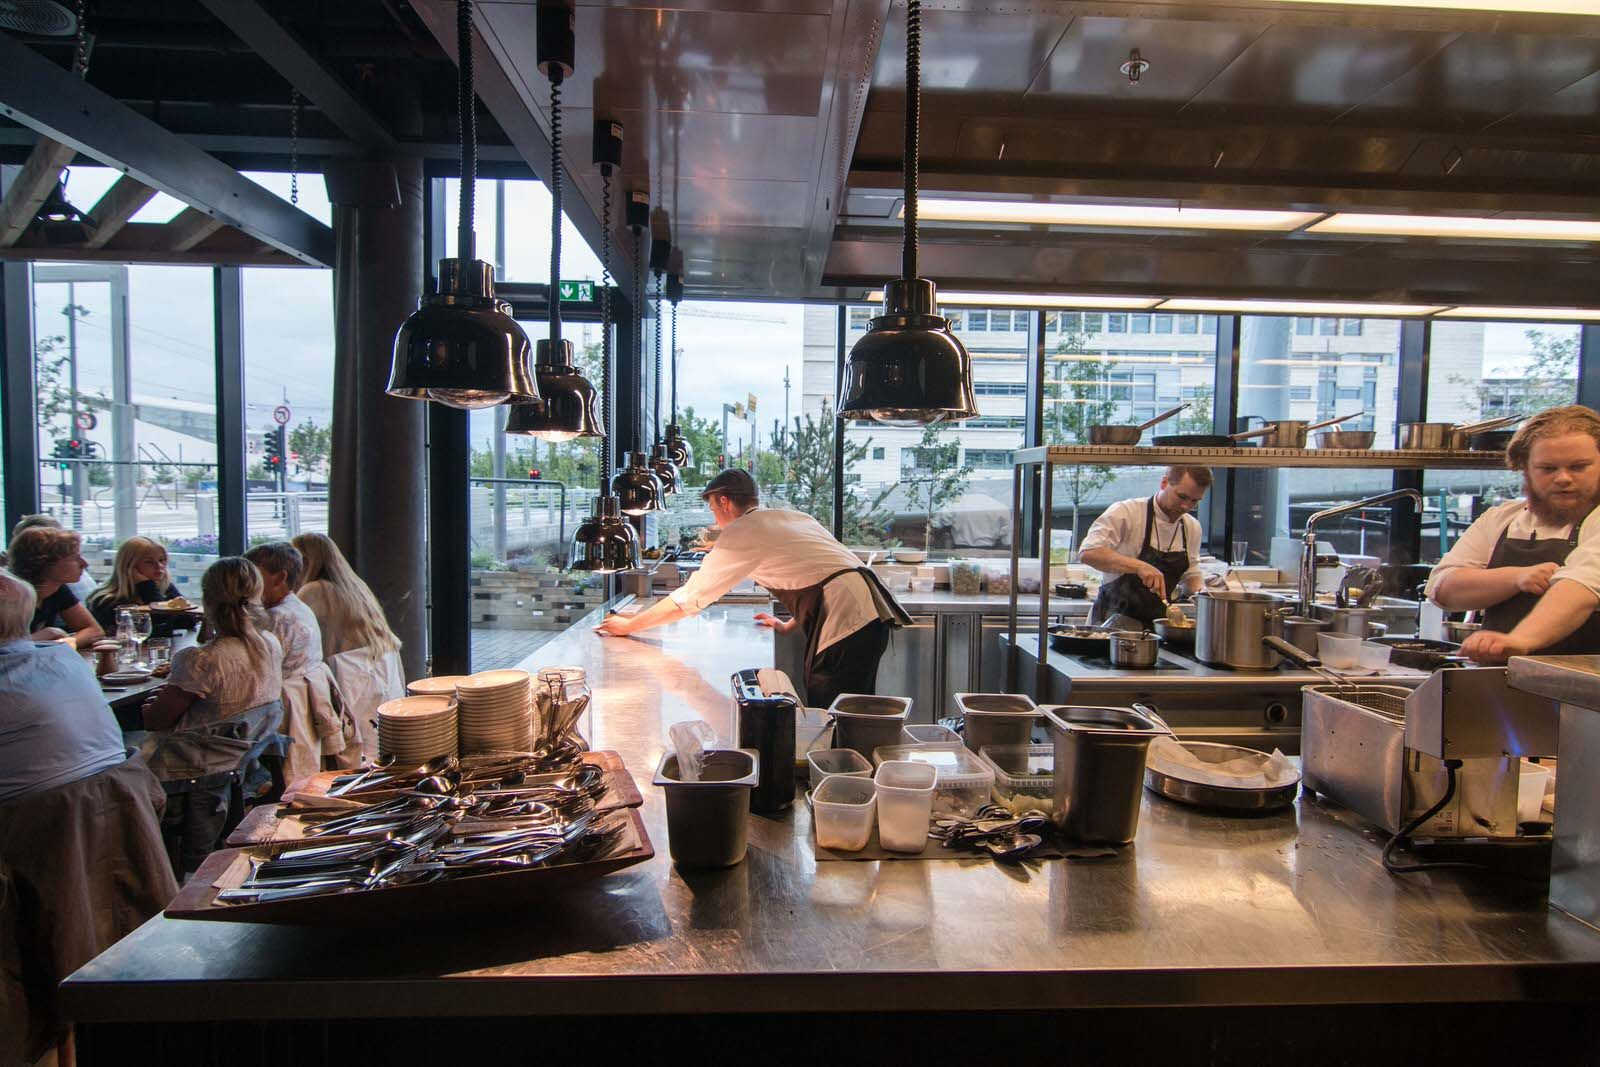 Restaurant Open Kitchen Concept vaaghals nordic cuisine | restaurants, brasseries & cafes